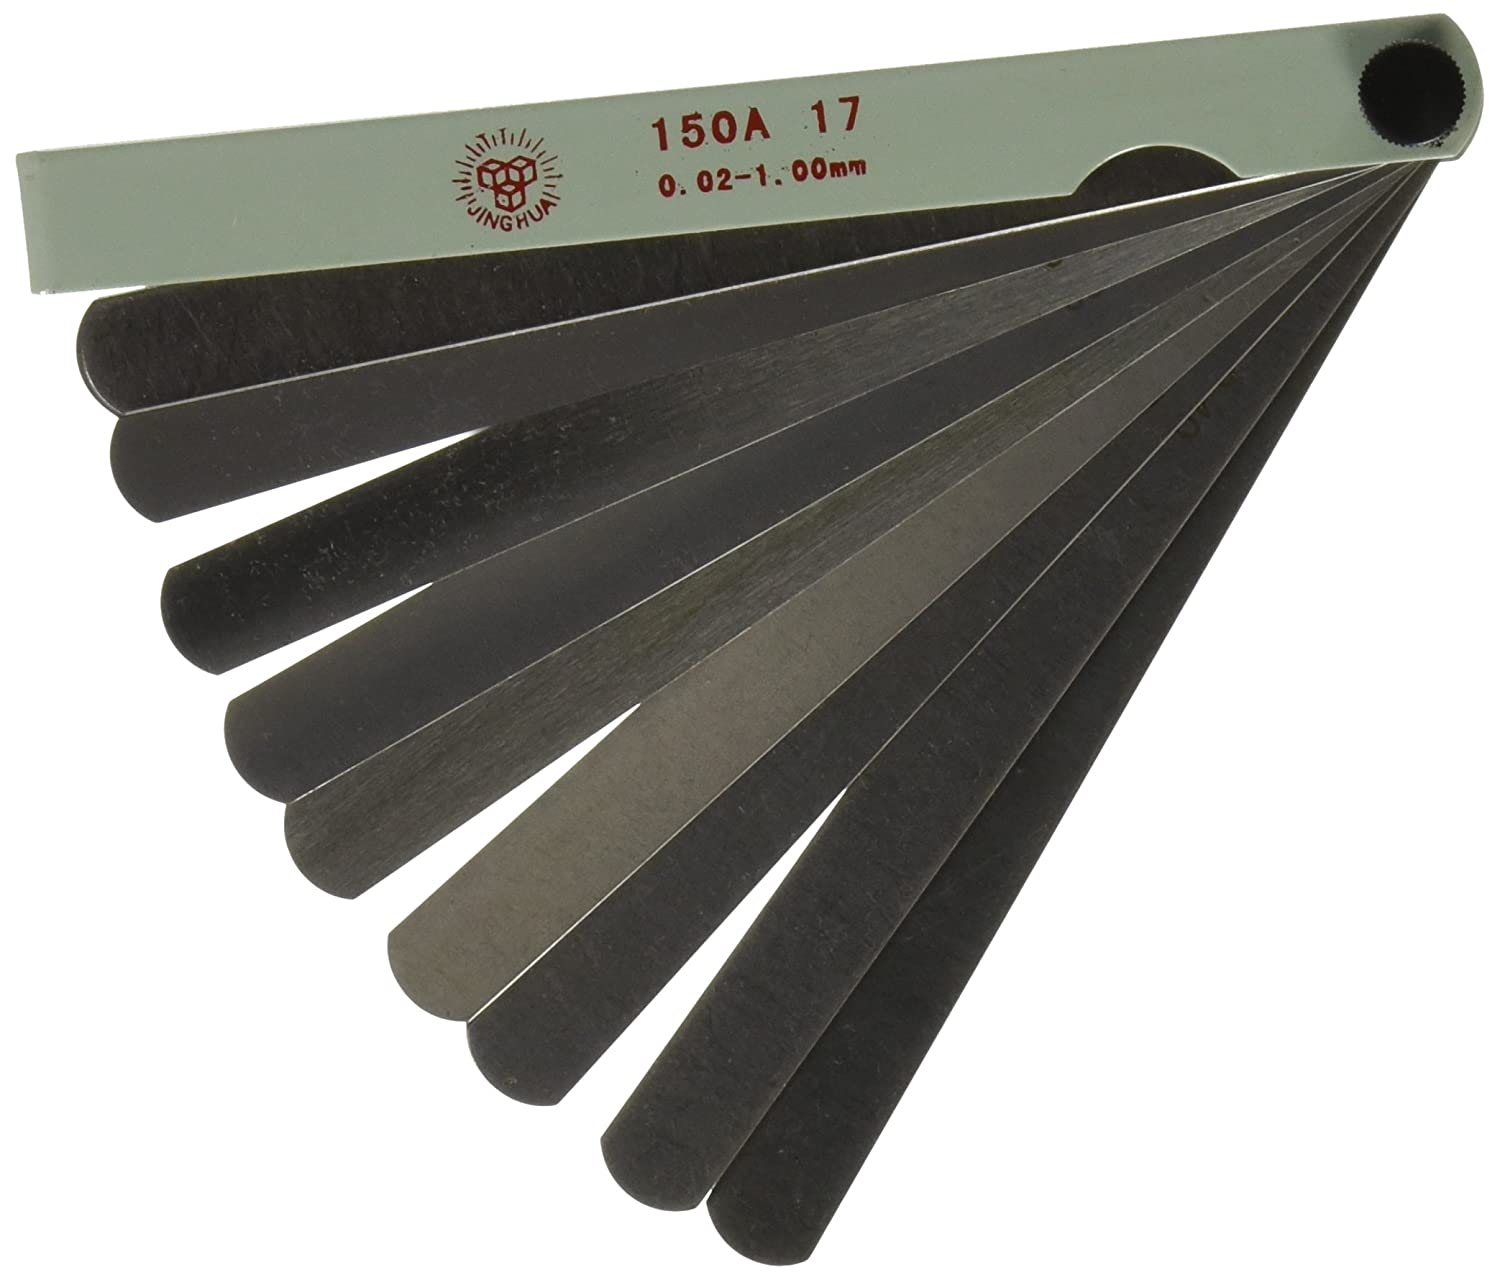 Ltd Uxcell 17 Blades Metallic Feeler Gauge 0.02mm to 1.0mm//5.8 0.02mm to 1.0mm//5.8 Dragonmarts Co // Uxcell a14022800ux0660